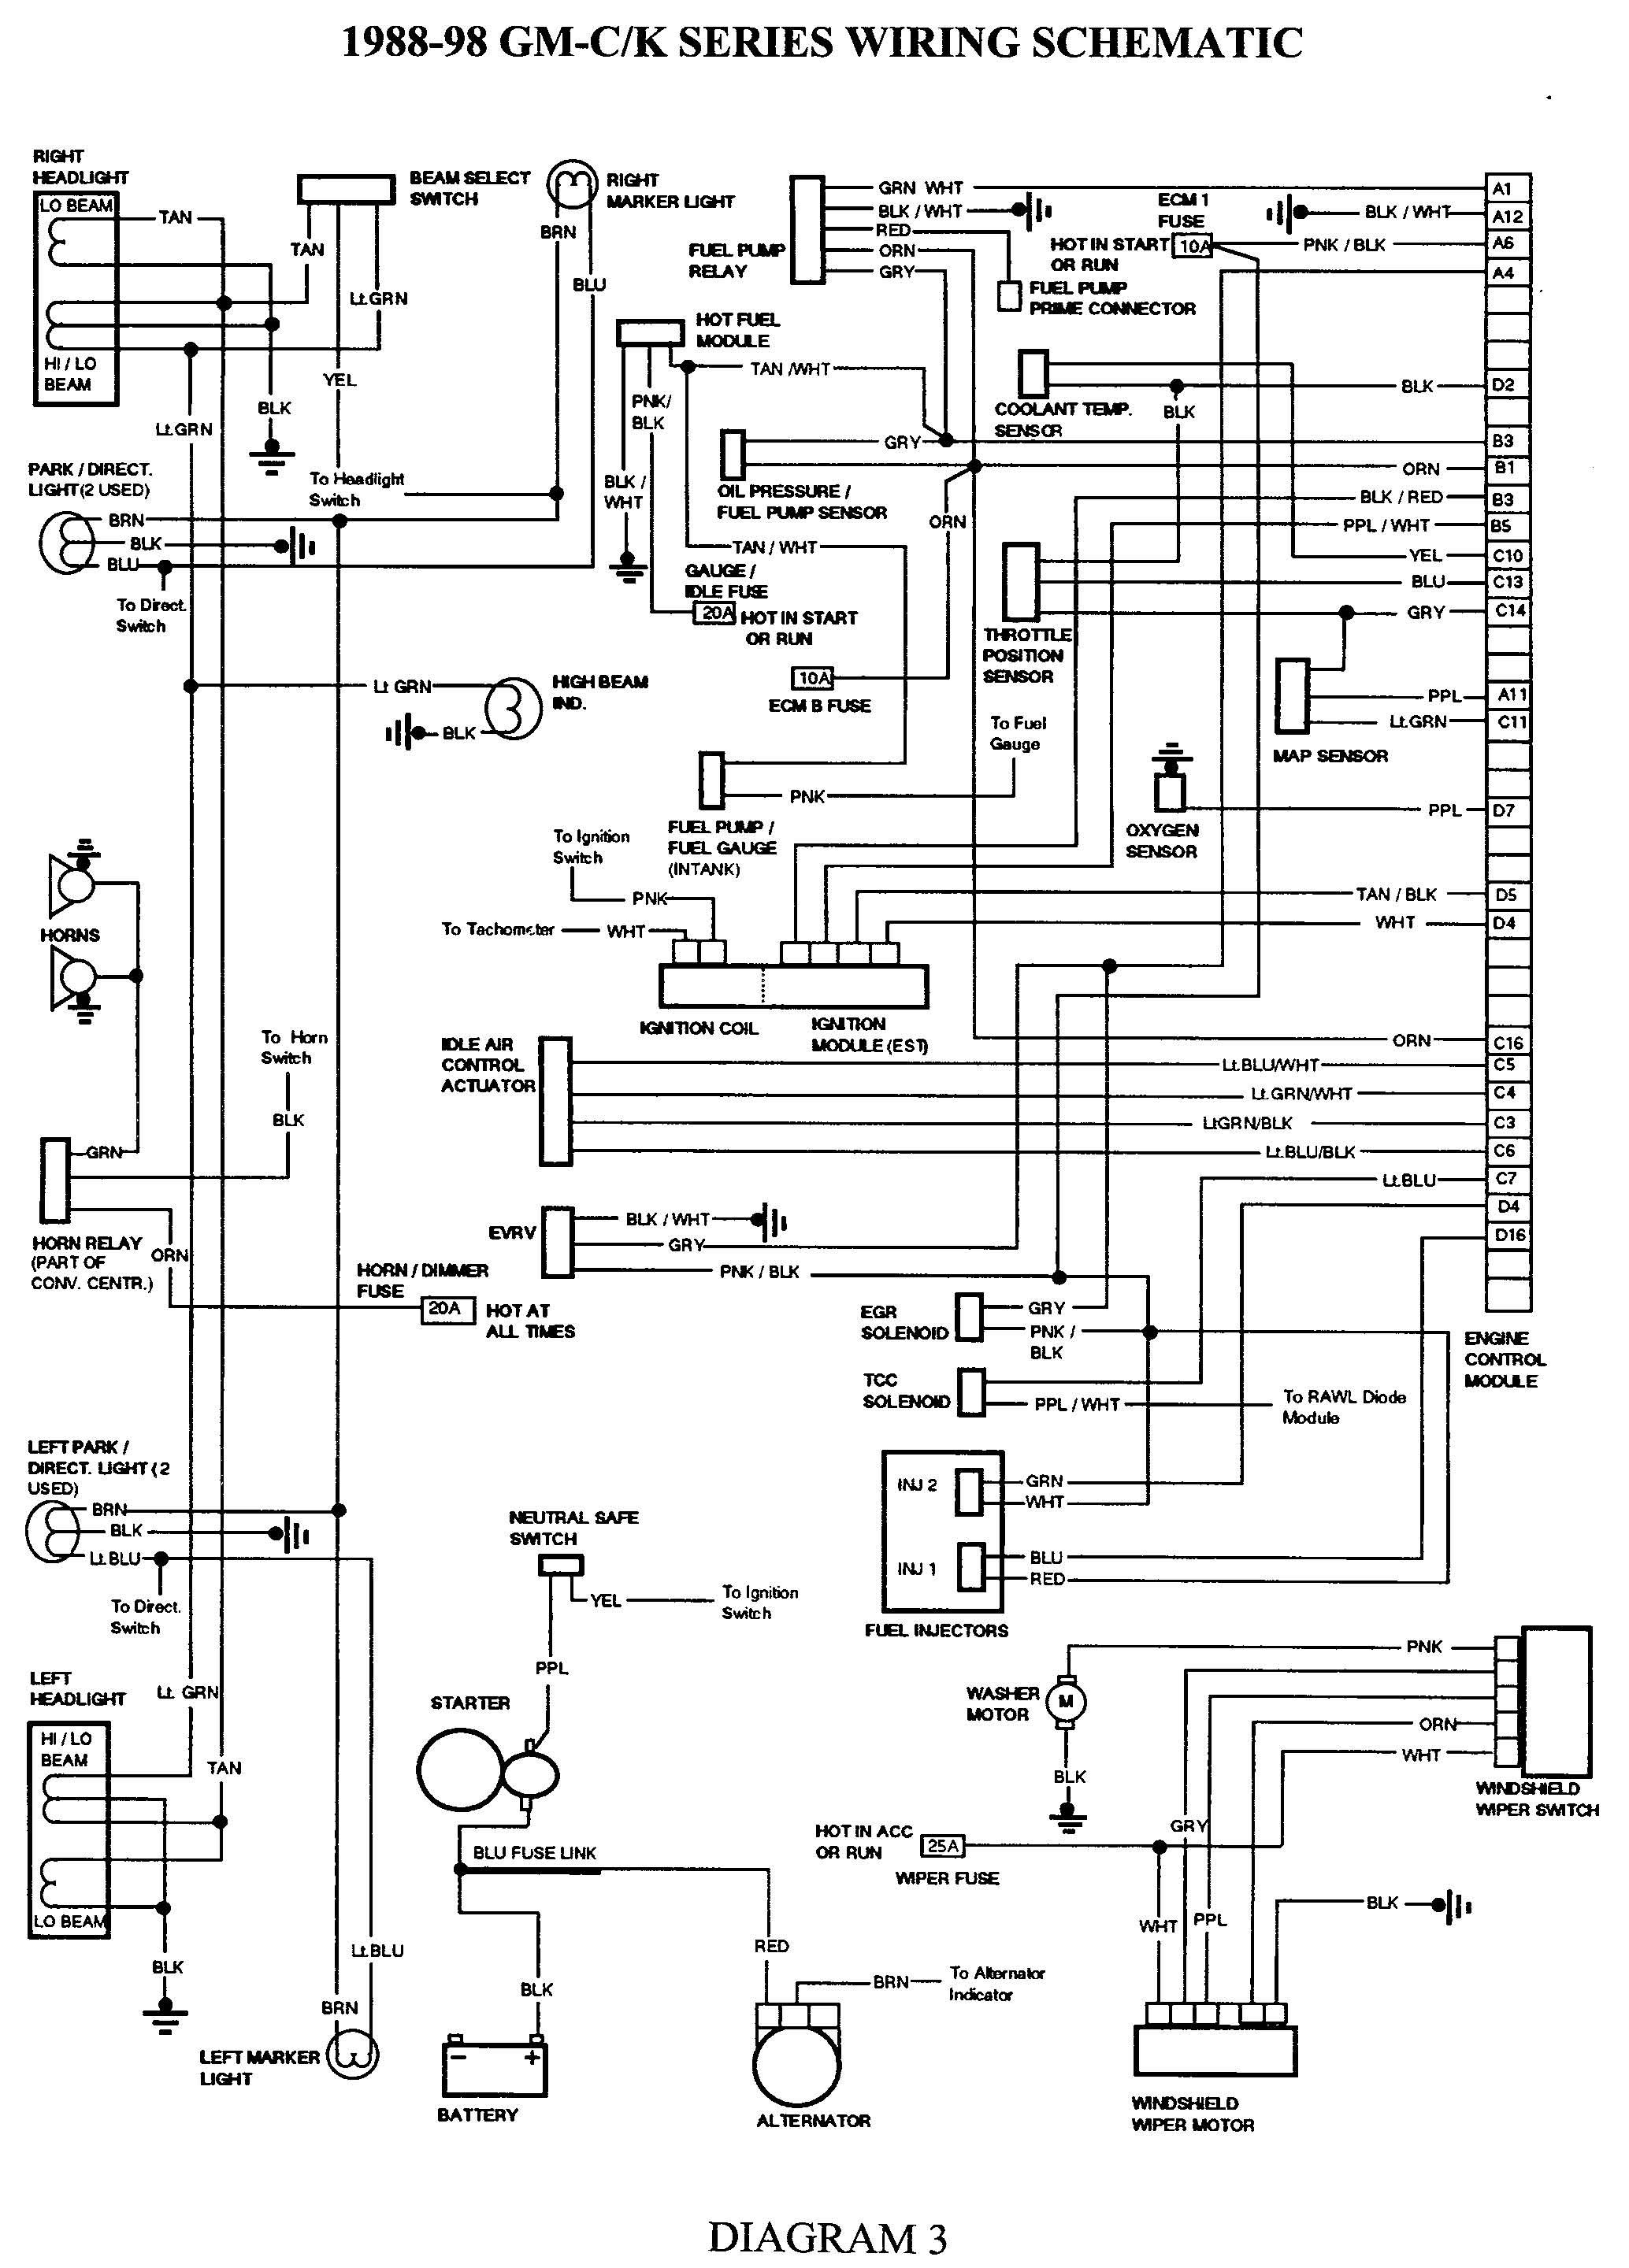 wiring diagram for 2008 gmc sierra 12 10 kenmo lp de \u2022 2011 Yukon gmc wiring harness diagram wiring diagram blog data rh 5 6 tefolia de wiring diagram for 2008 gmc sierra radio 2007 gmc sierra wiring diagram